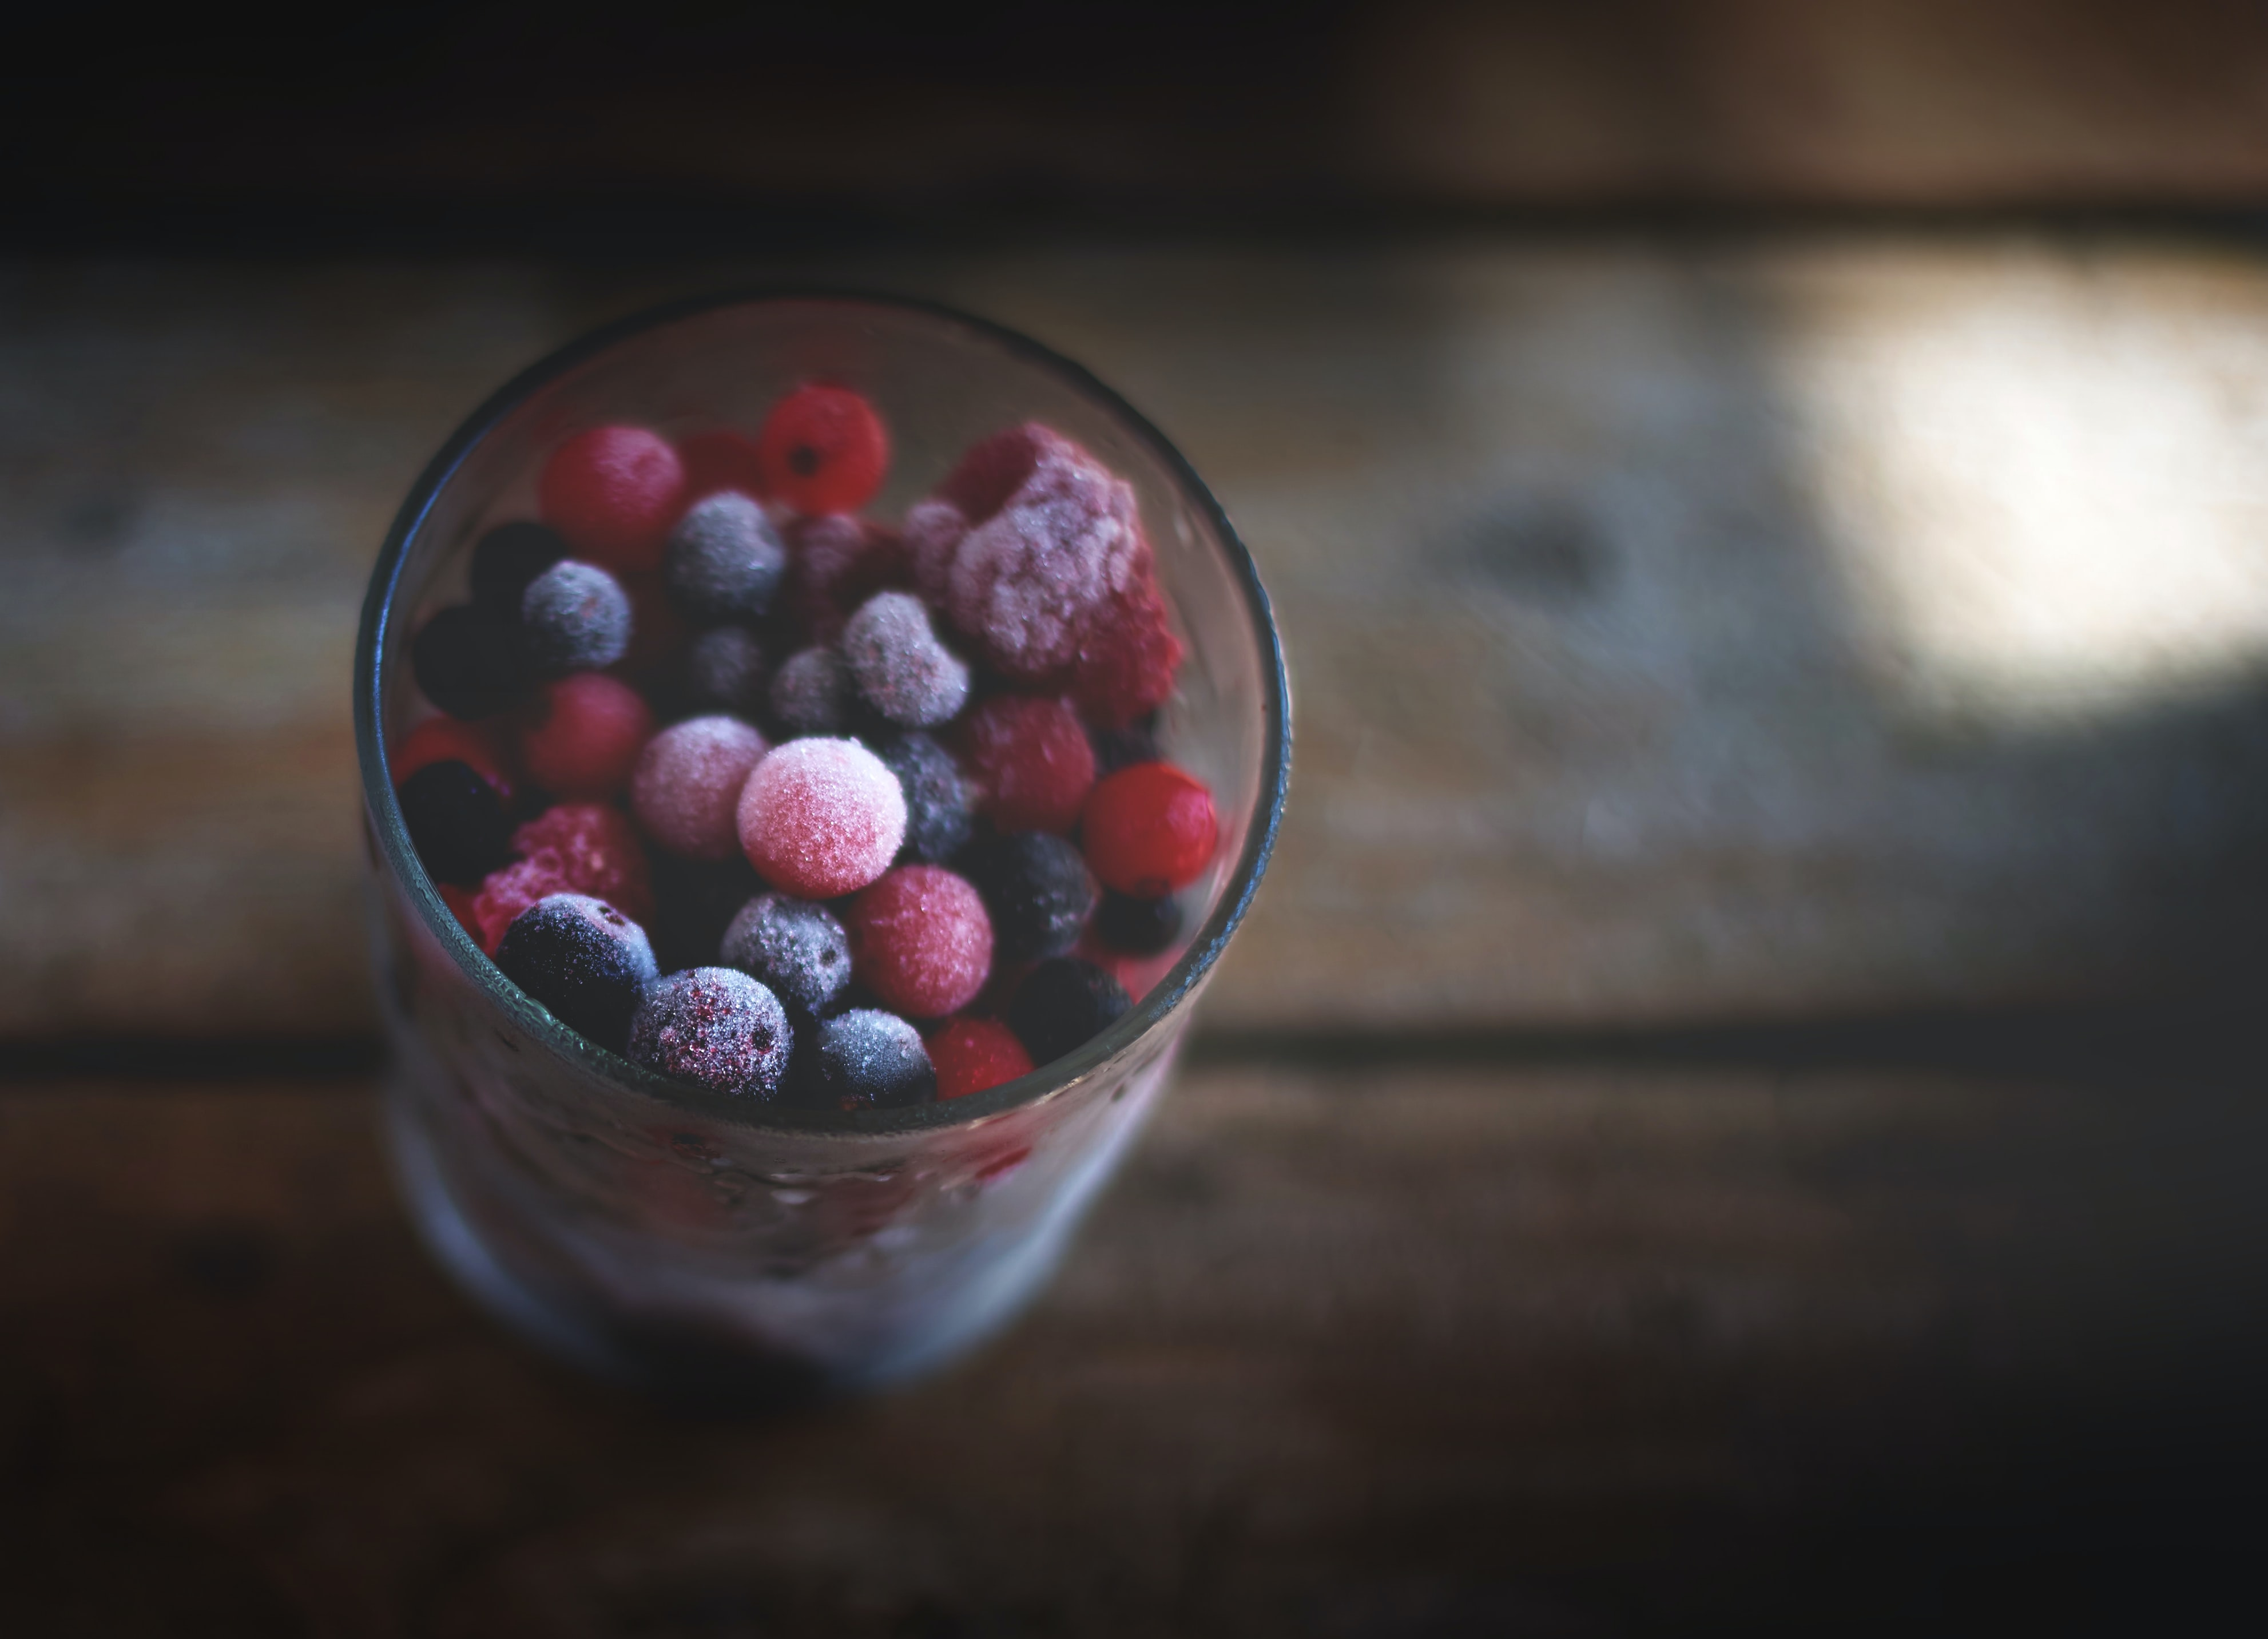 Tall glass of frozen blueberries, raspberries, and assorted berries